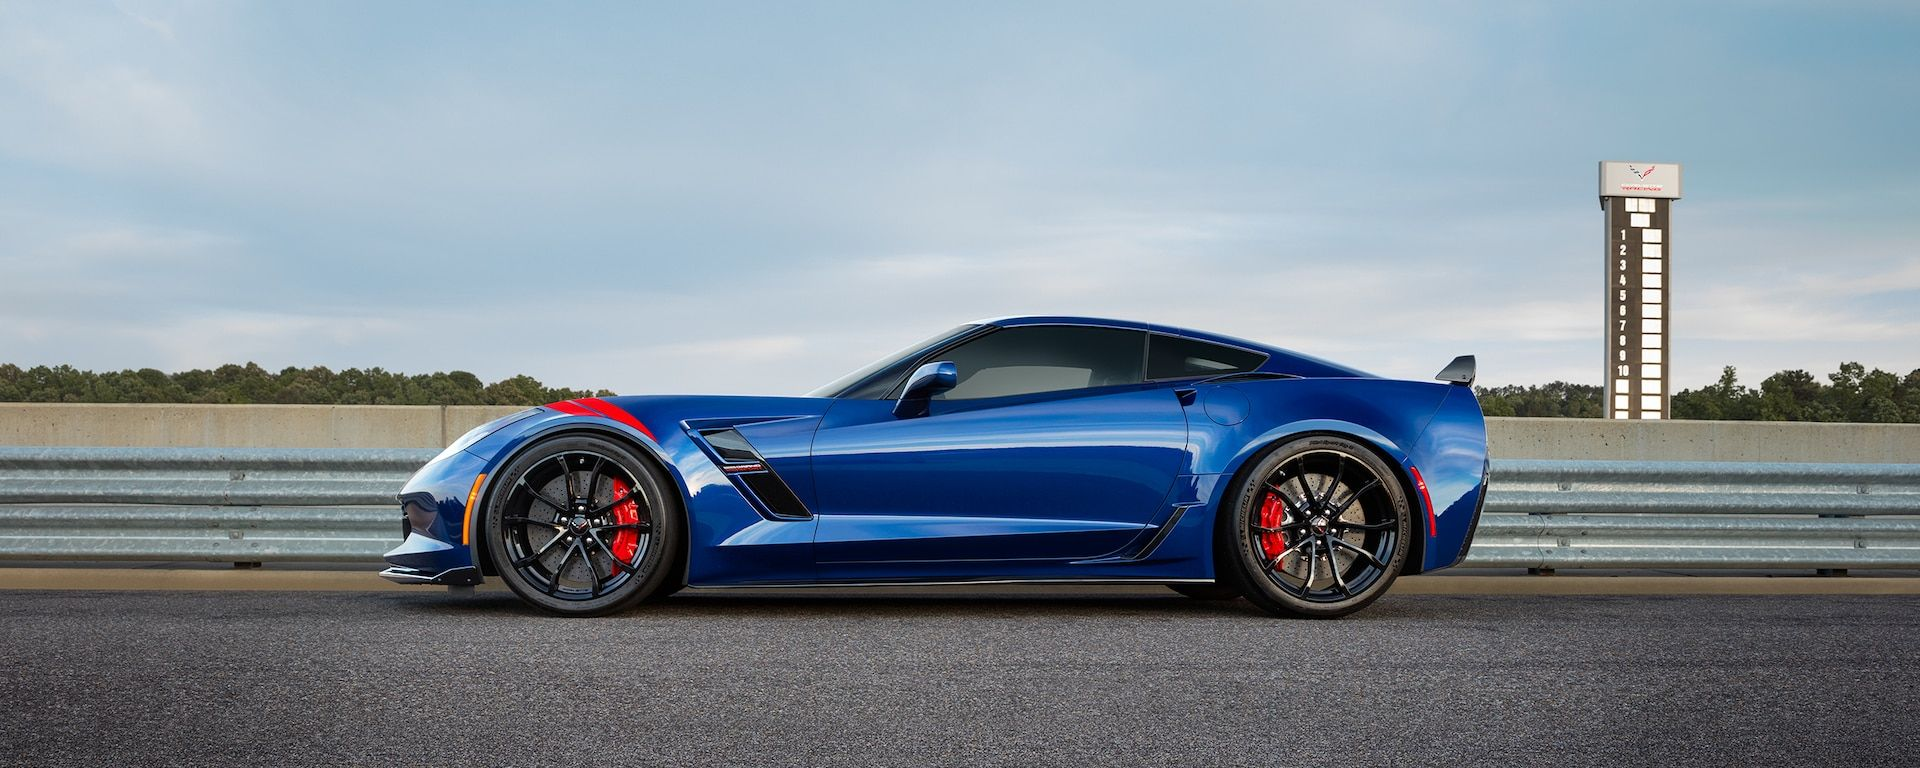 2019 Corvette Grand Sport Sports Car Performance side